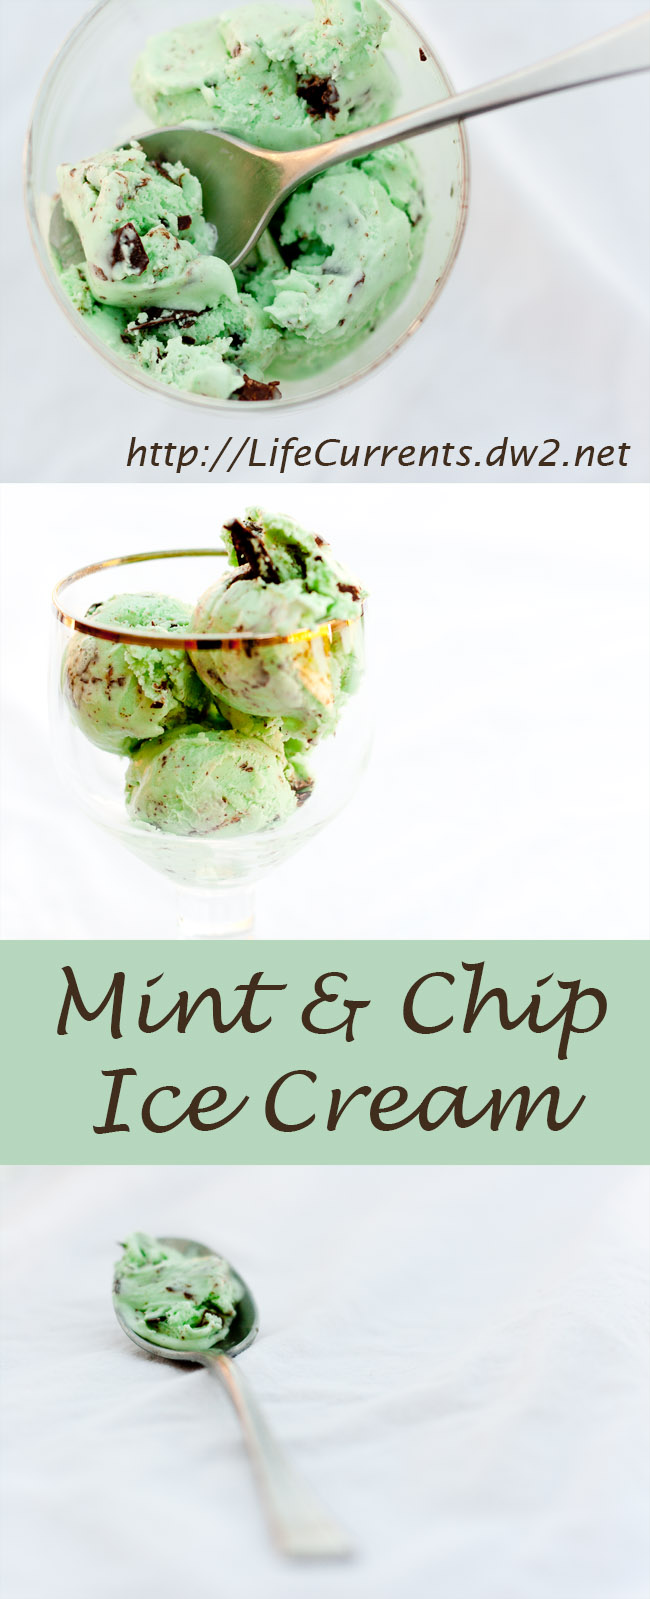 mint and chip ice cream Pin from Life Currents